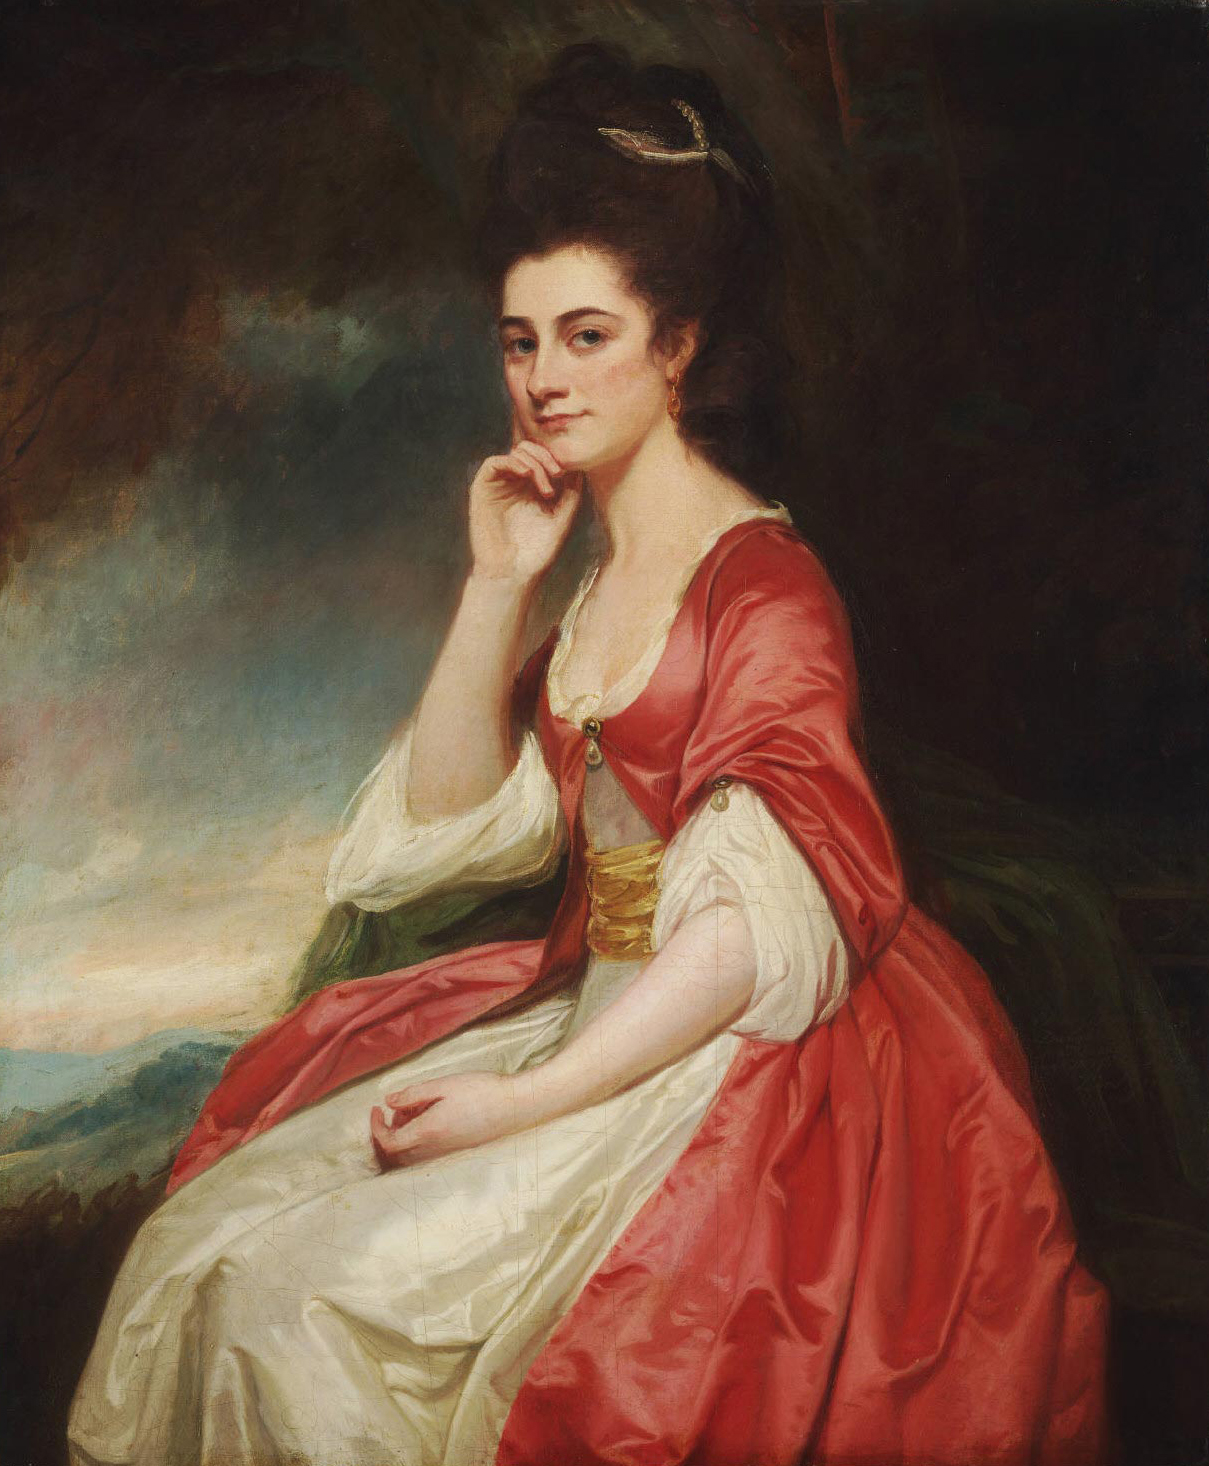 ... rests her head on her hand while wearing a British casual tunic under  an over-dress secured by a single clasp in this Romney portrait from 1780 -1781.